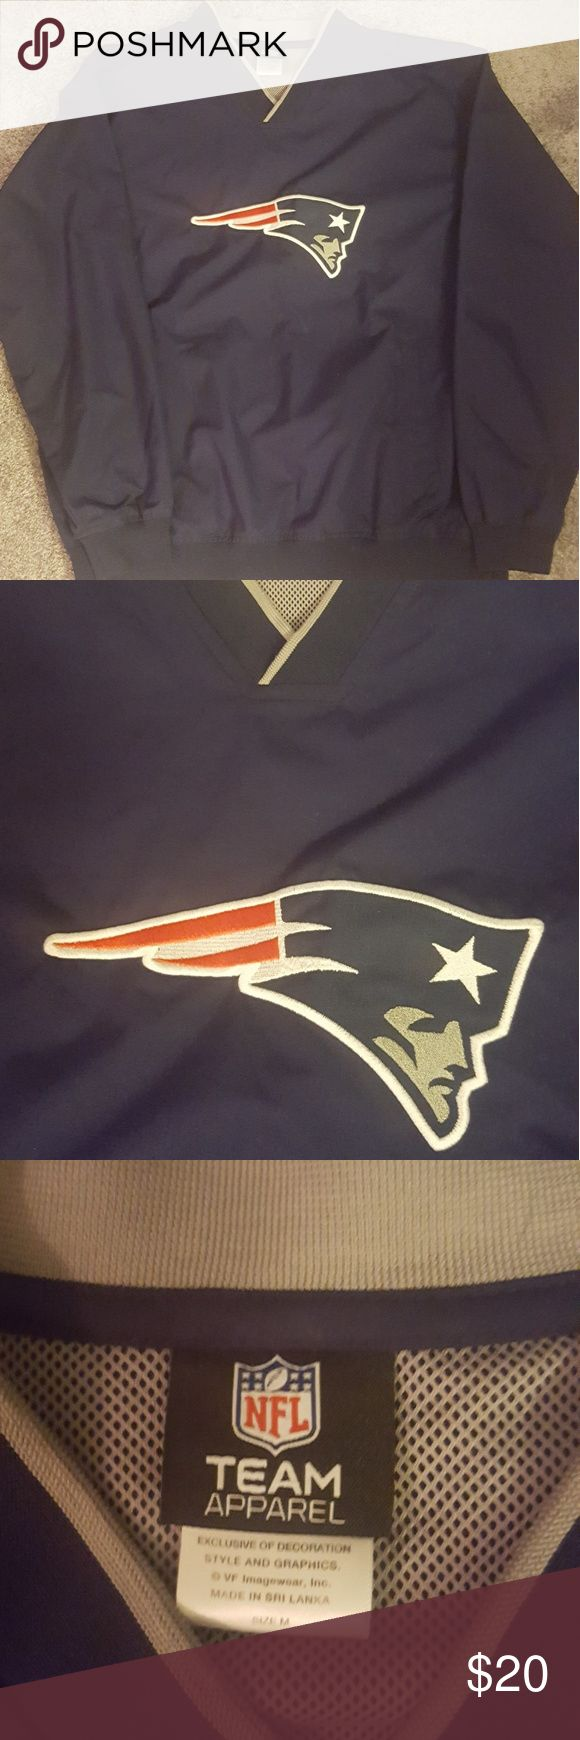 New England Patriots Pull-over Jacket Authentic NFL Gear (this is not Majestic, just wasnt another option) Pull over, slick style, v-neck jacket. Water resistant style material. New England Patriots apparel.  Great on a rainy day or with warm ups.  Worn only a couple times.  Size M (generous fit). Majestic Tops Sweatshirts & Hoodies